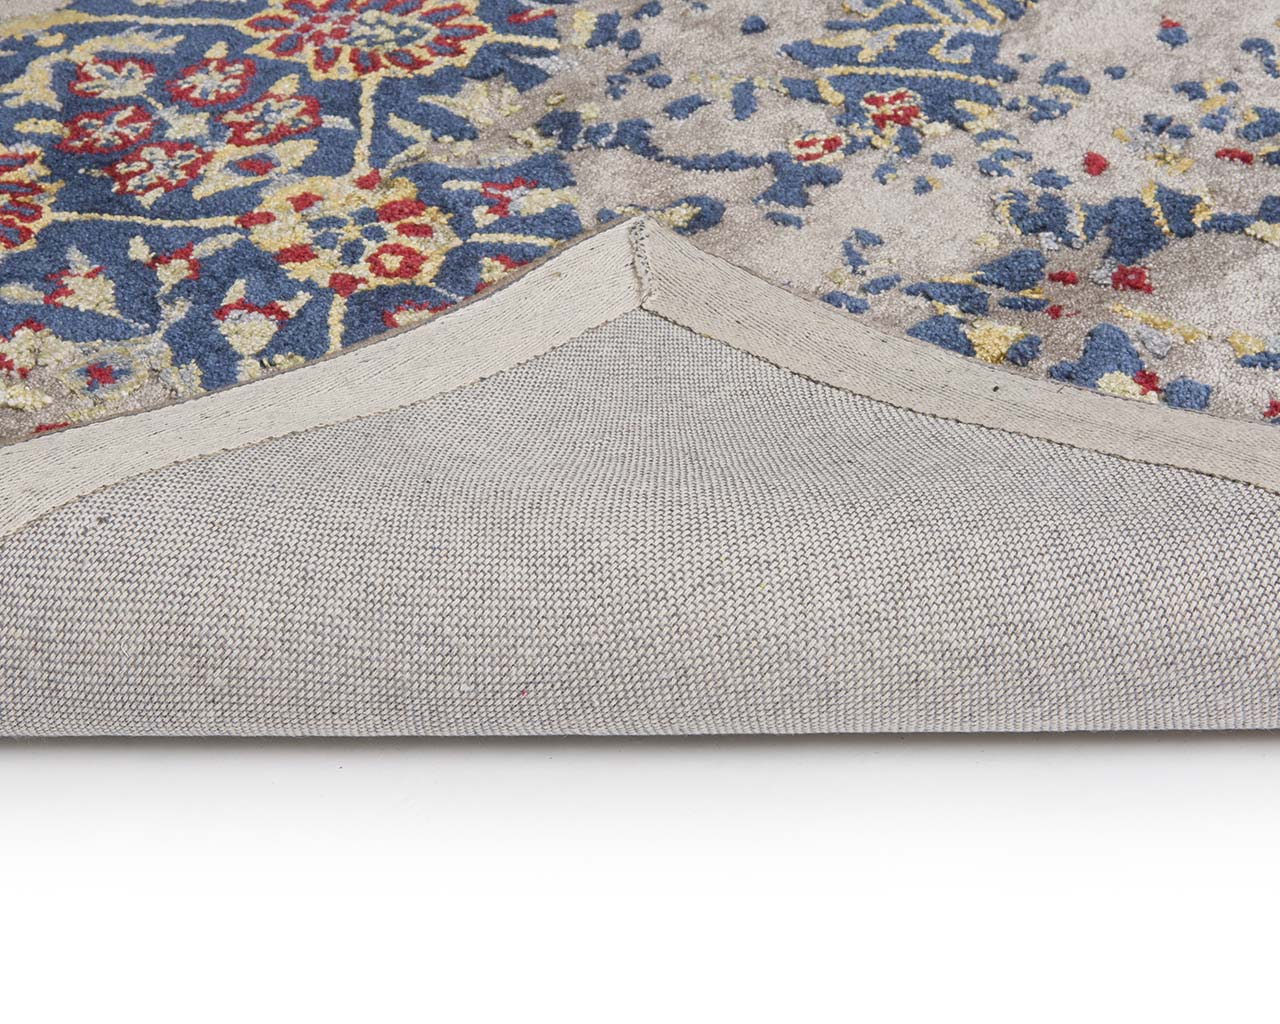 dodger blue tufted oriental floor tapijten